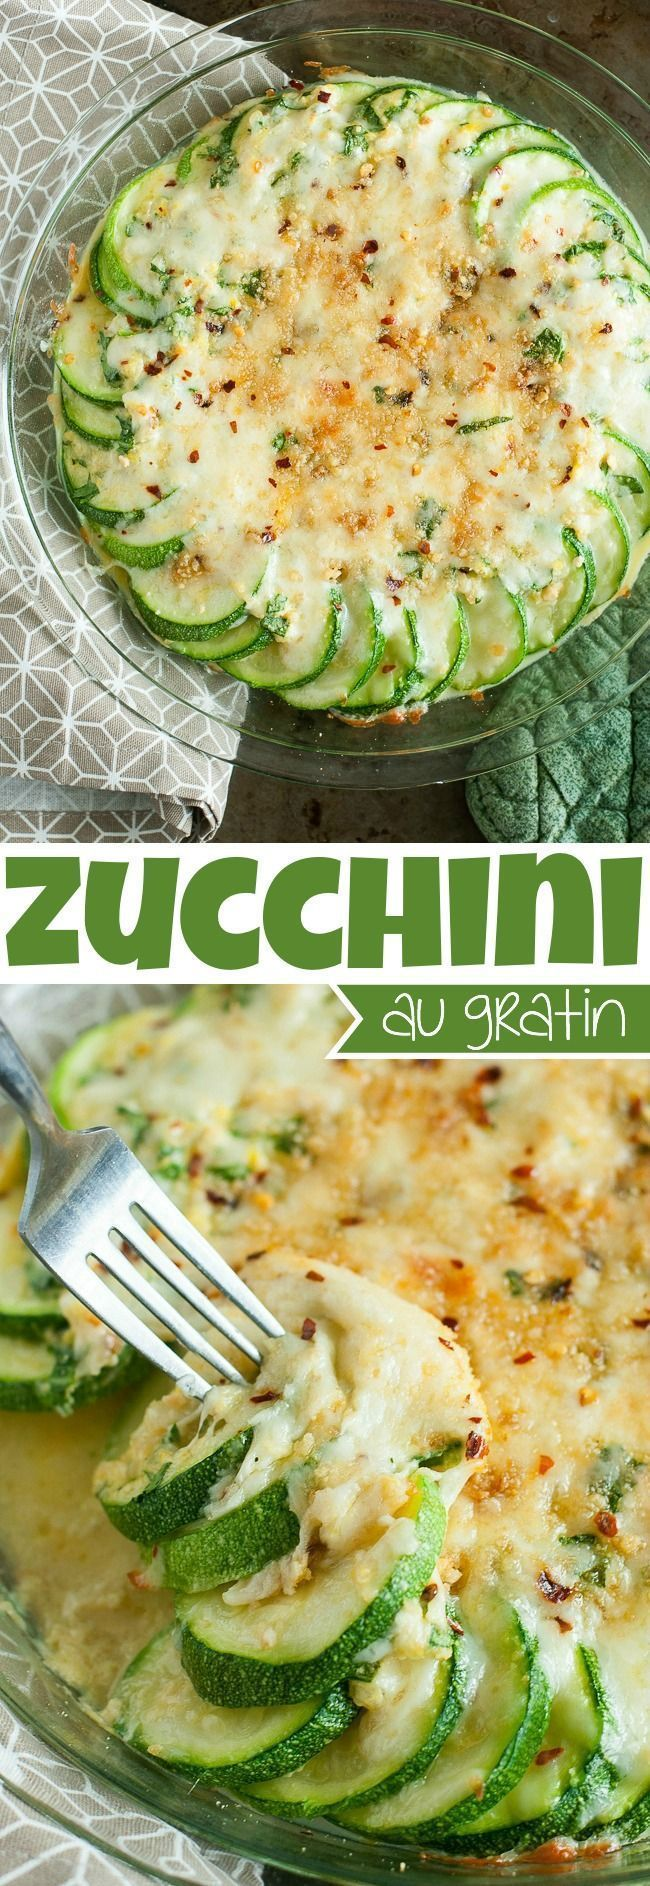 Sliced zucchini rounds are topped with freshly grated cheddar and fontina cheeses and baked to bubbly perfection in this tasty Zucchini Casserole